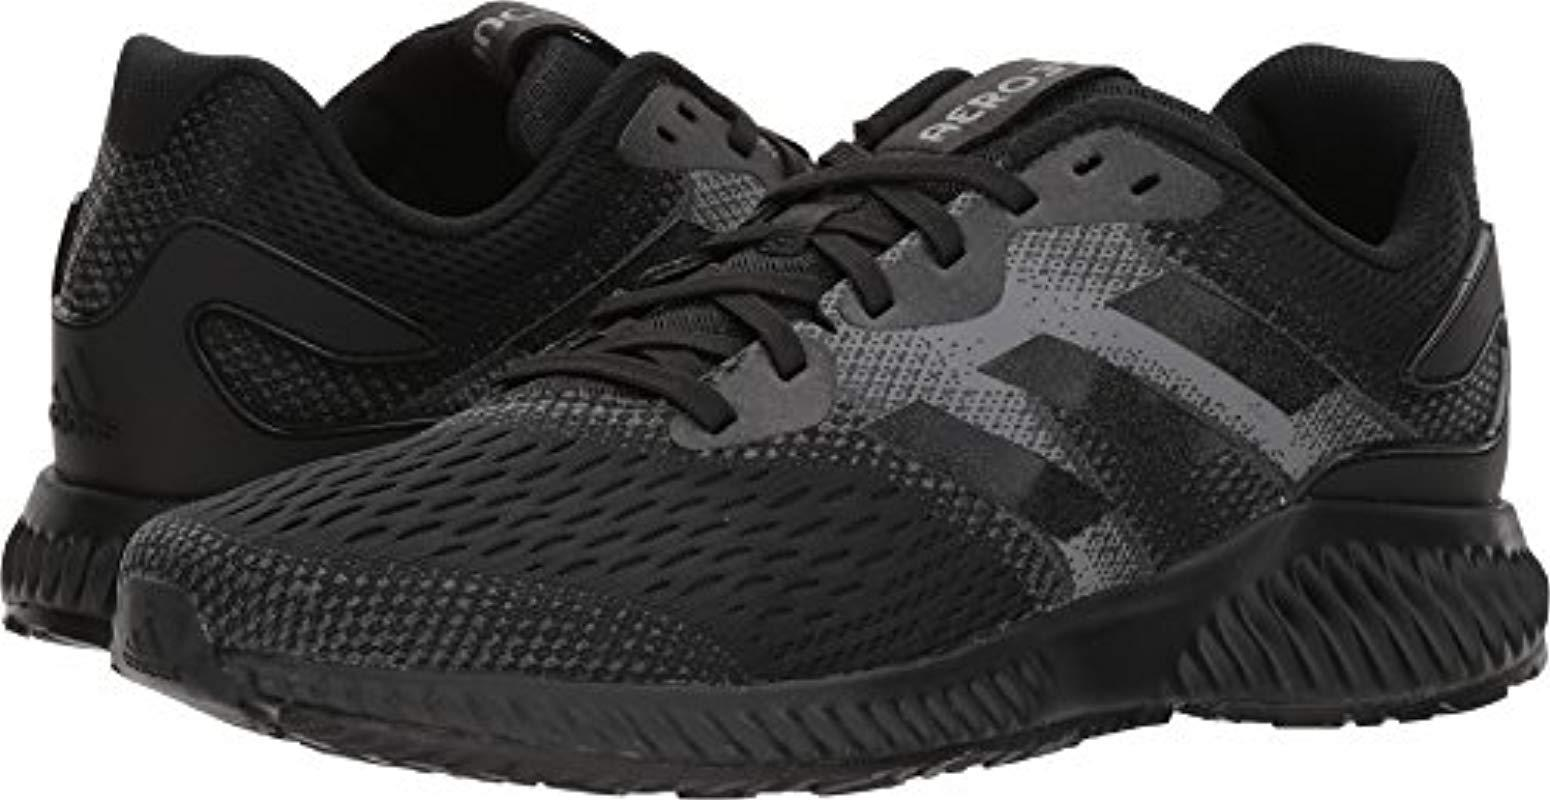 8f1df2f8a26e Lyst - Adidas Aerobounce M in Black for Men - Save 6.38297872340425%